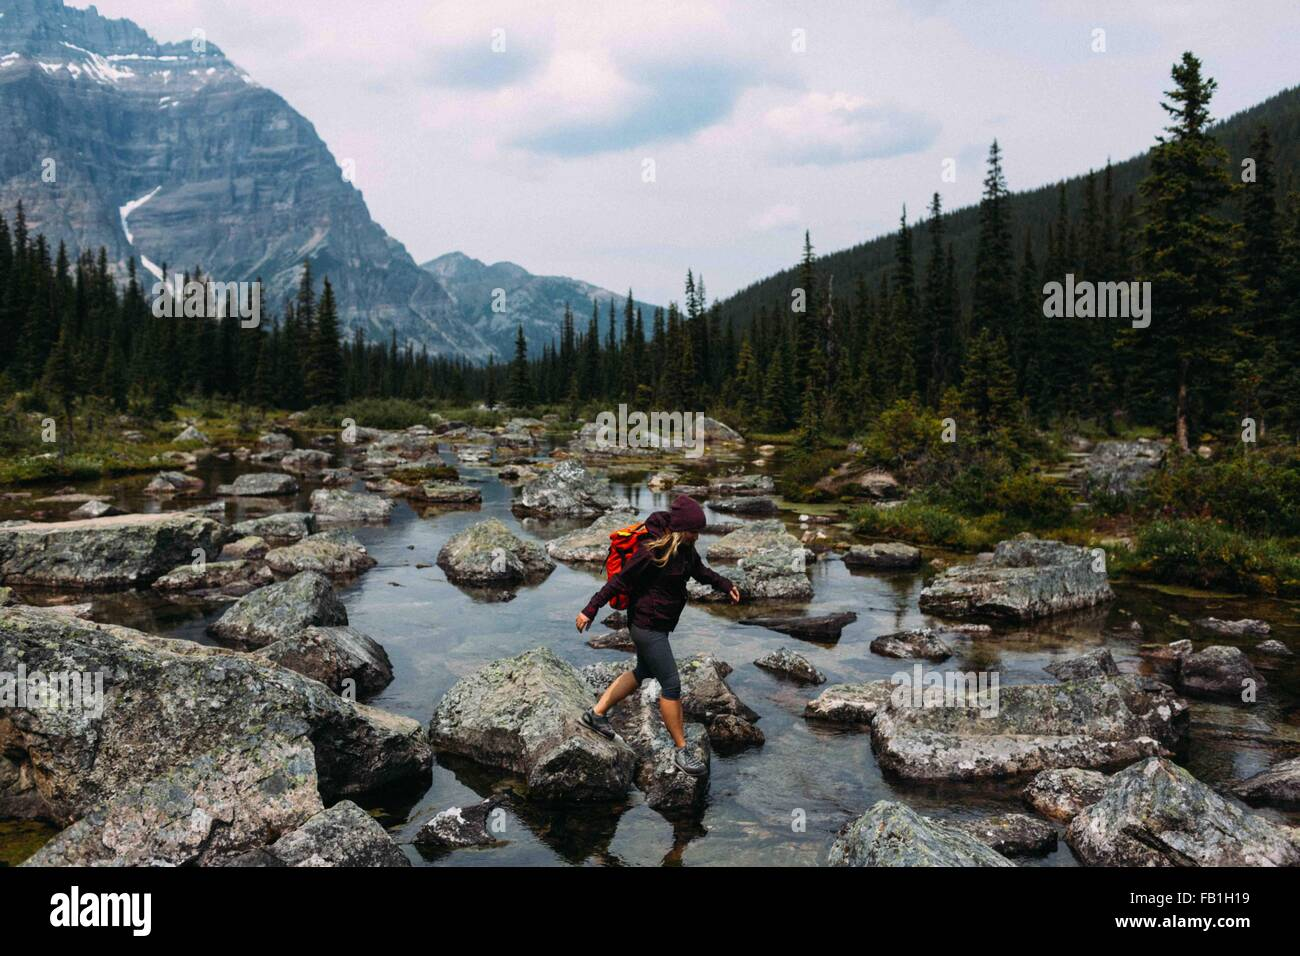 Side view of mid adult woman walking on rocky riverbed, Moraine lake, Banff National Park, Alberta Canada - Stock Image